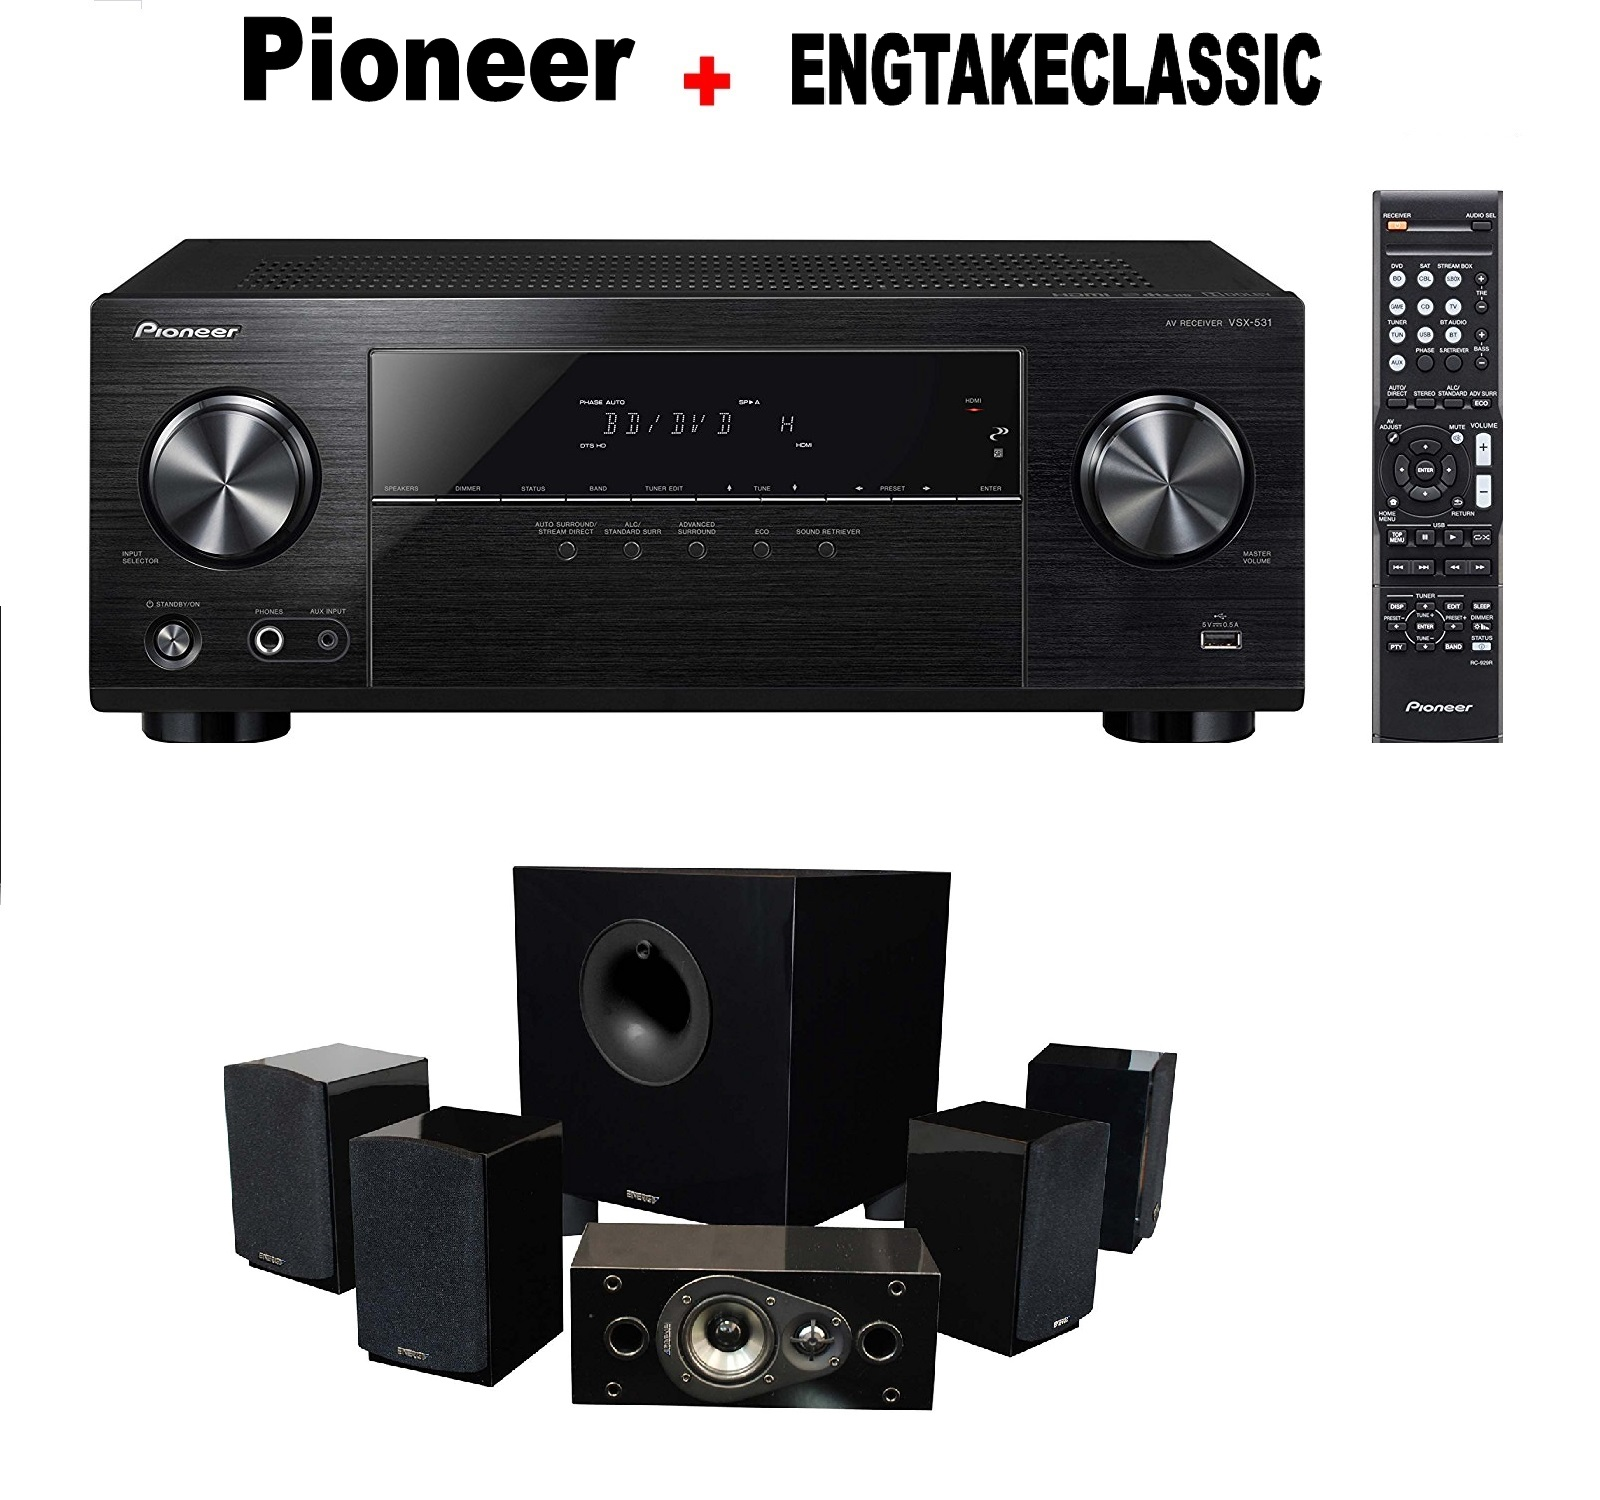 Pioneer VSX-531 5.1 Channel Network AV Receiver Audio & Video Component Receiver, Black + Energy 5.1 Take Classic Home Entertainment System (Set of Six, Black) Bundle